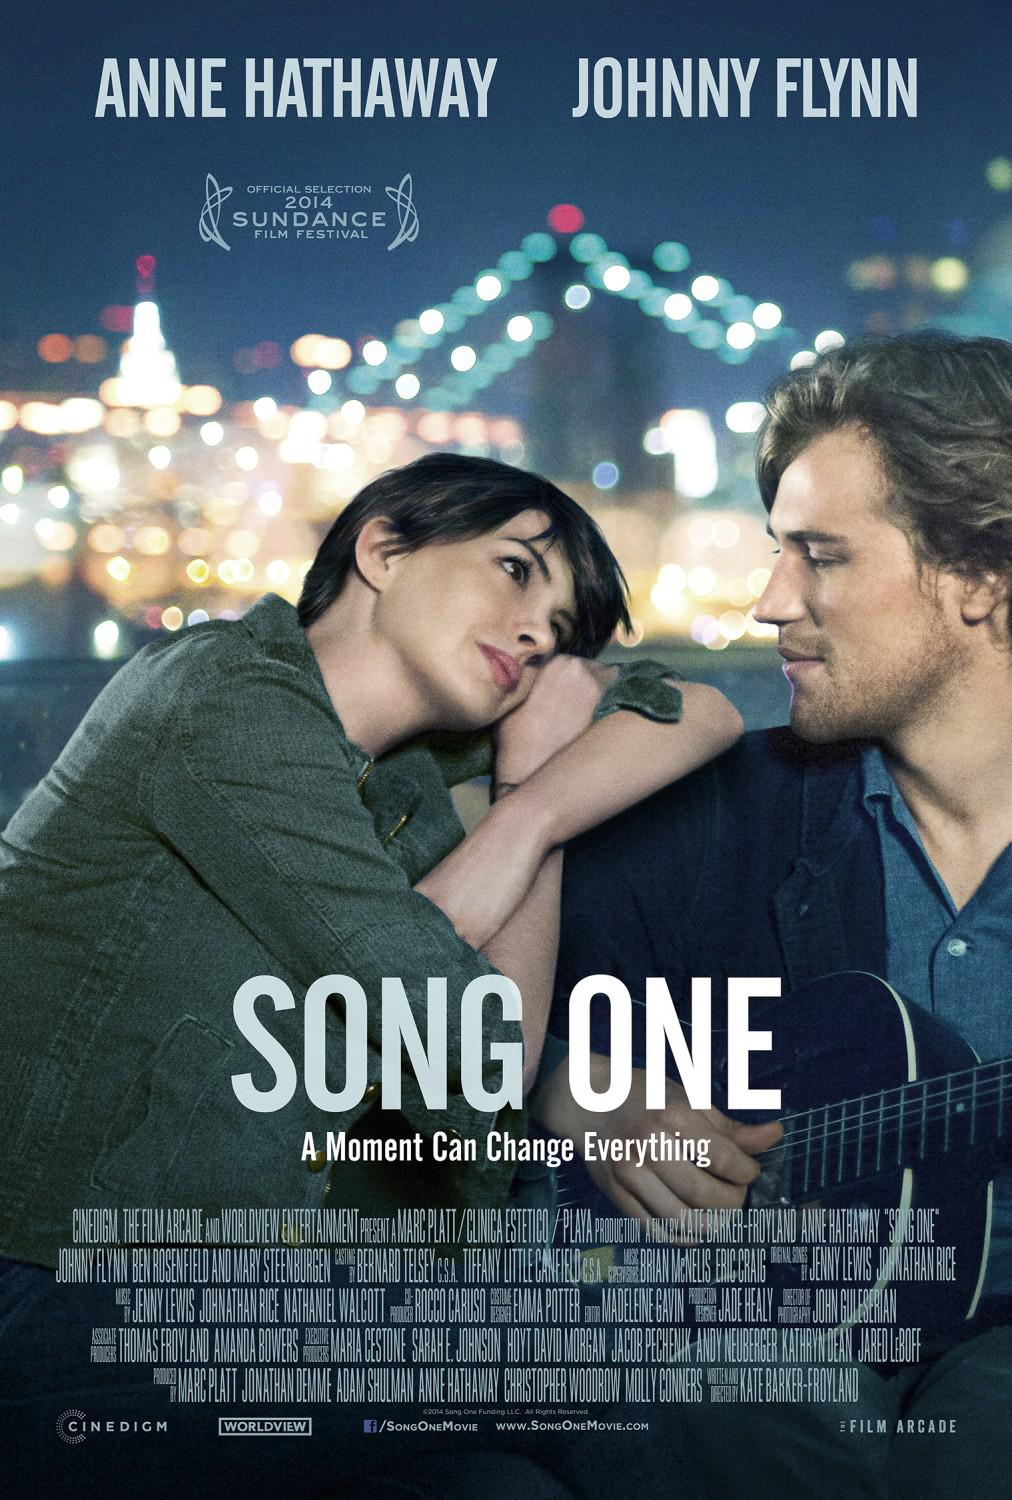 Film - Song one - A Moment can Change Everything - Anne Hathaway - Johnny Flynn